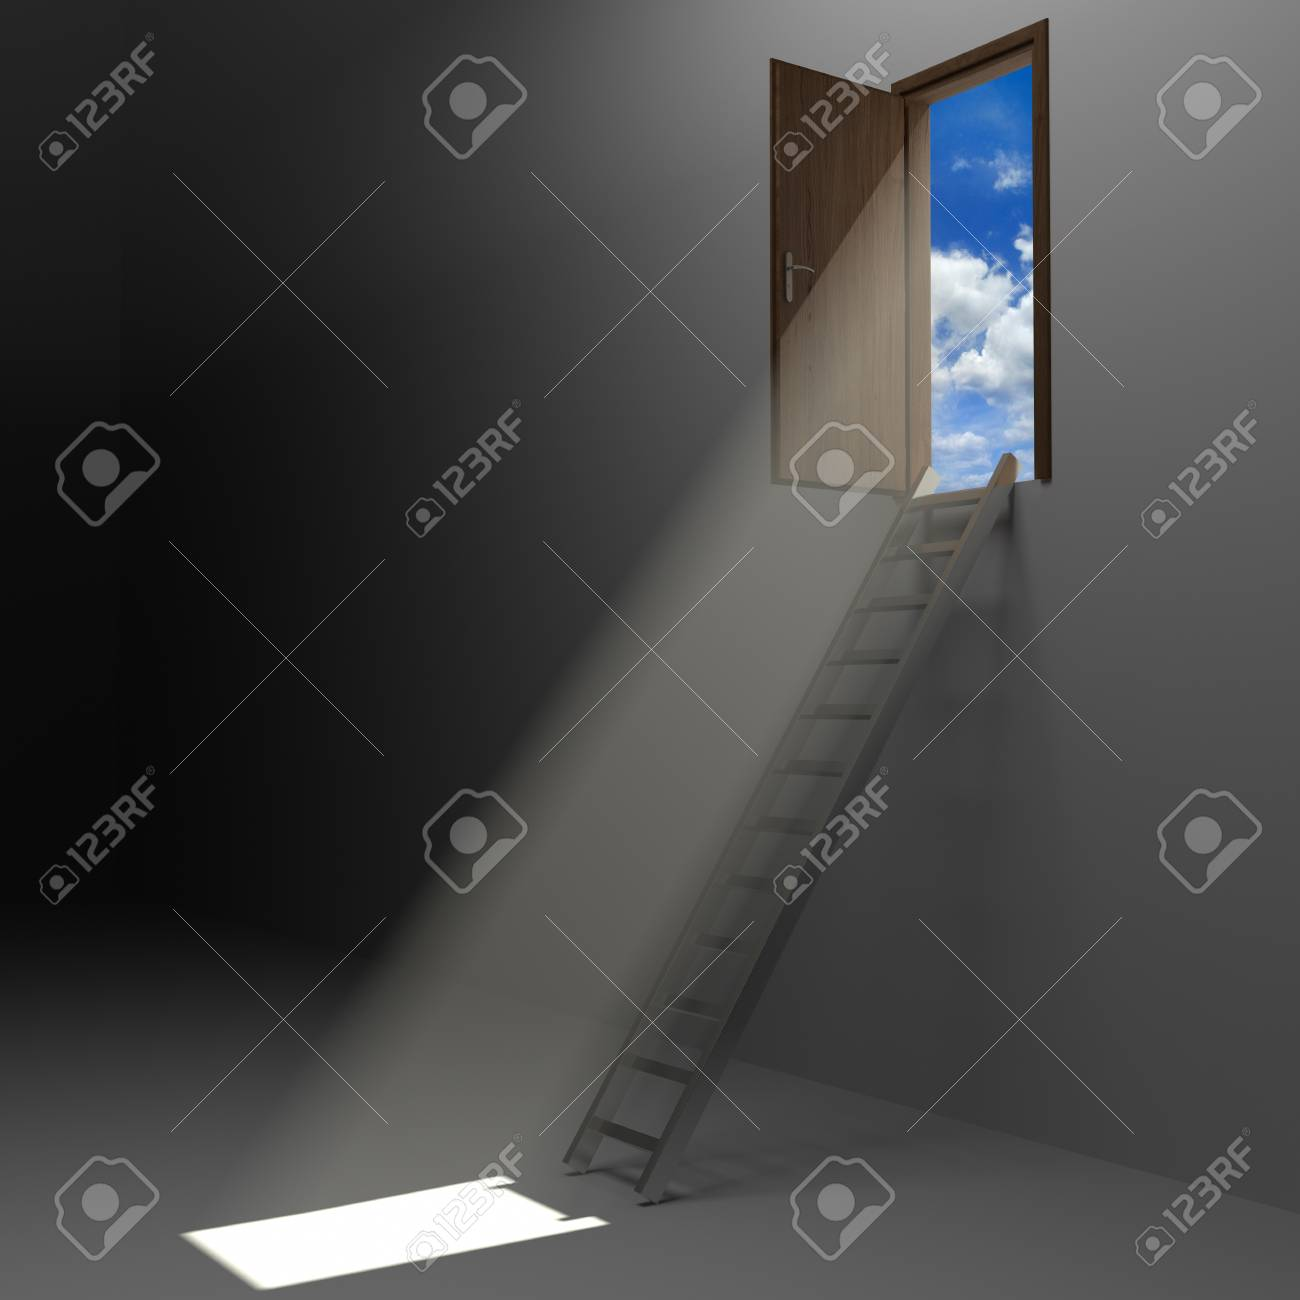 Ladder leading up to the light Stock Photo - 11768309